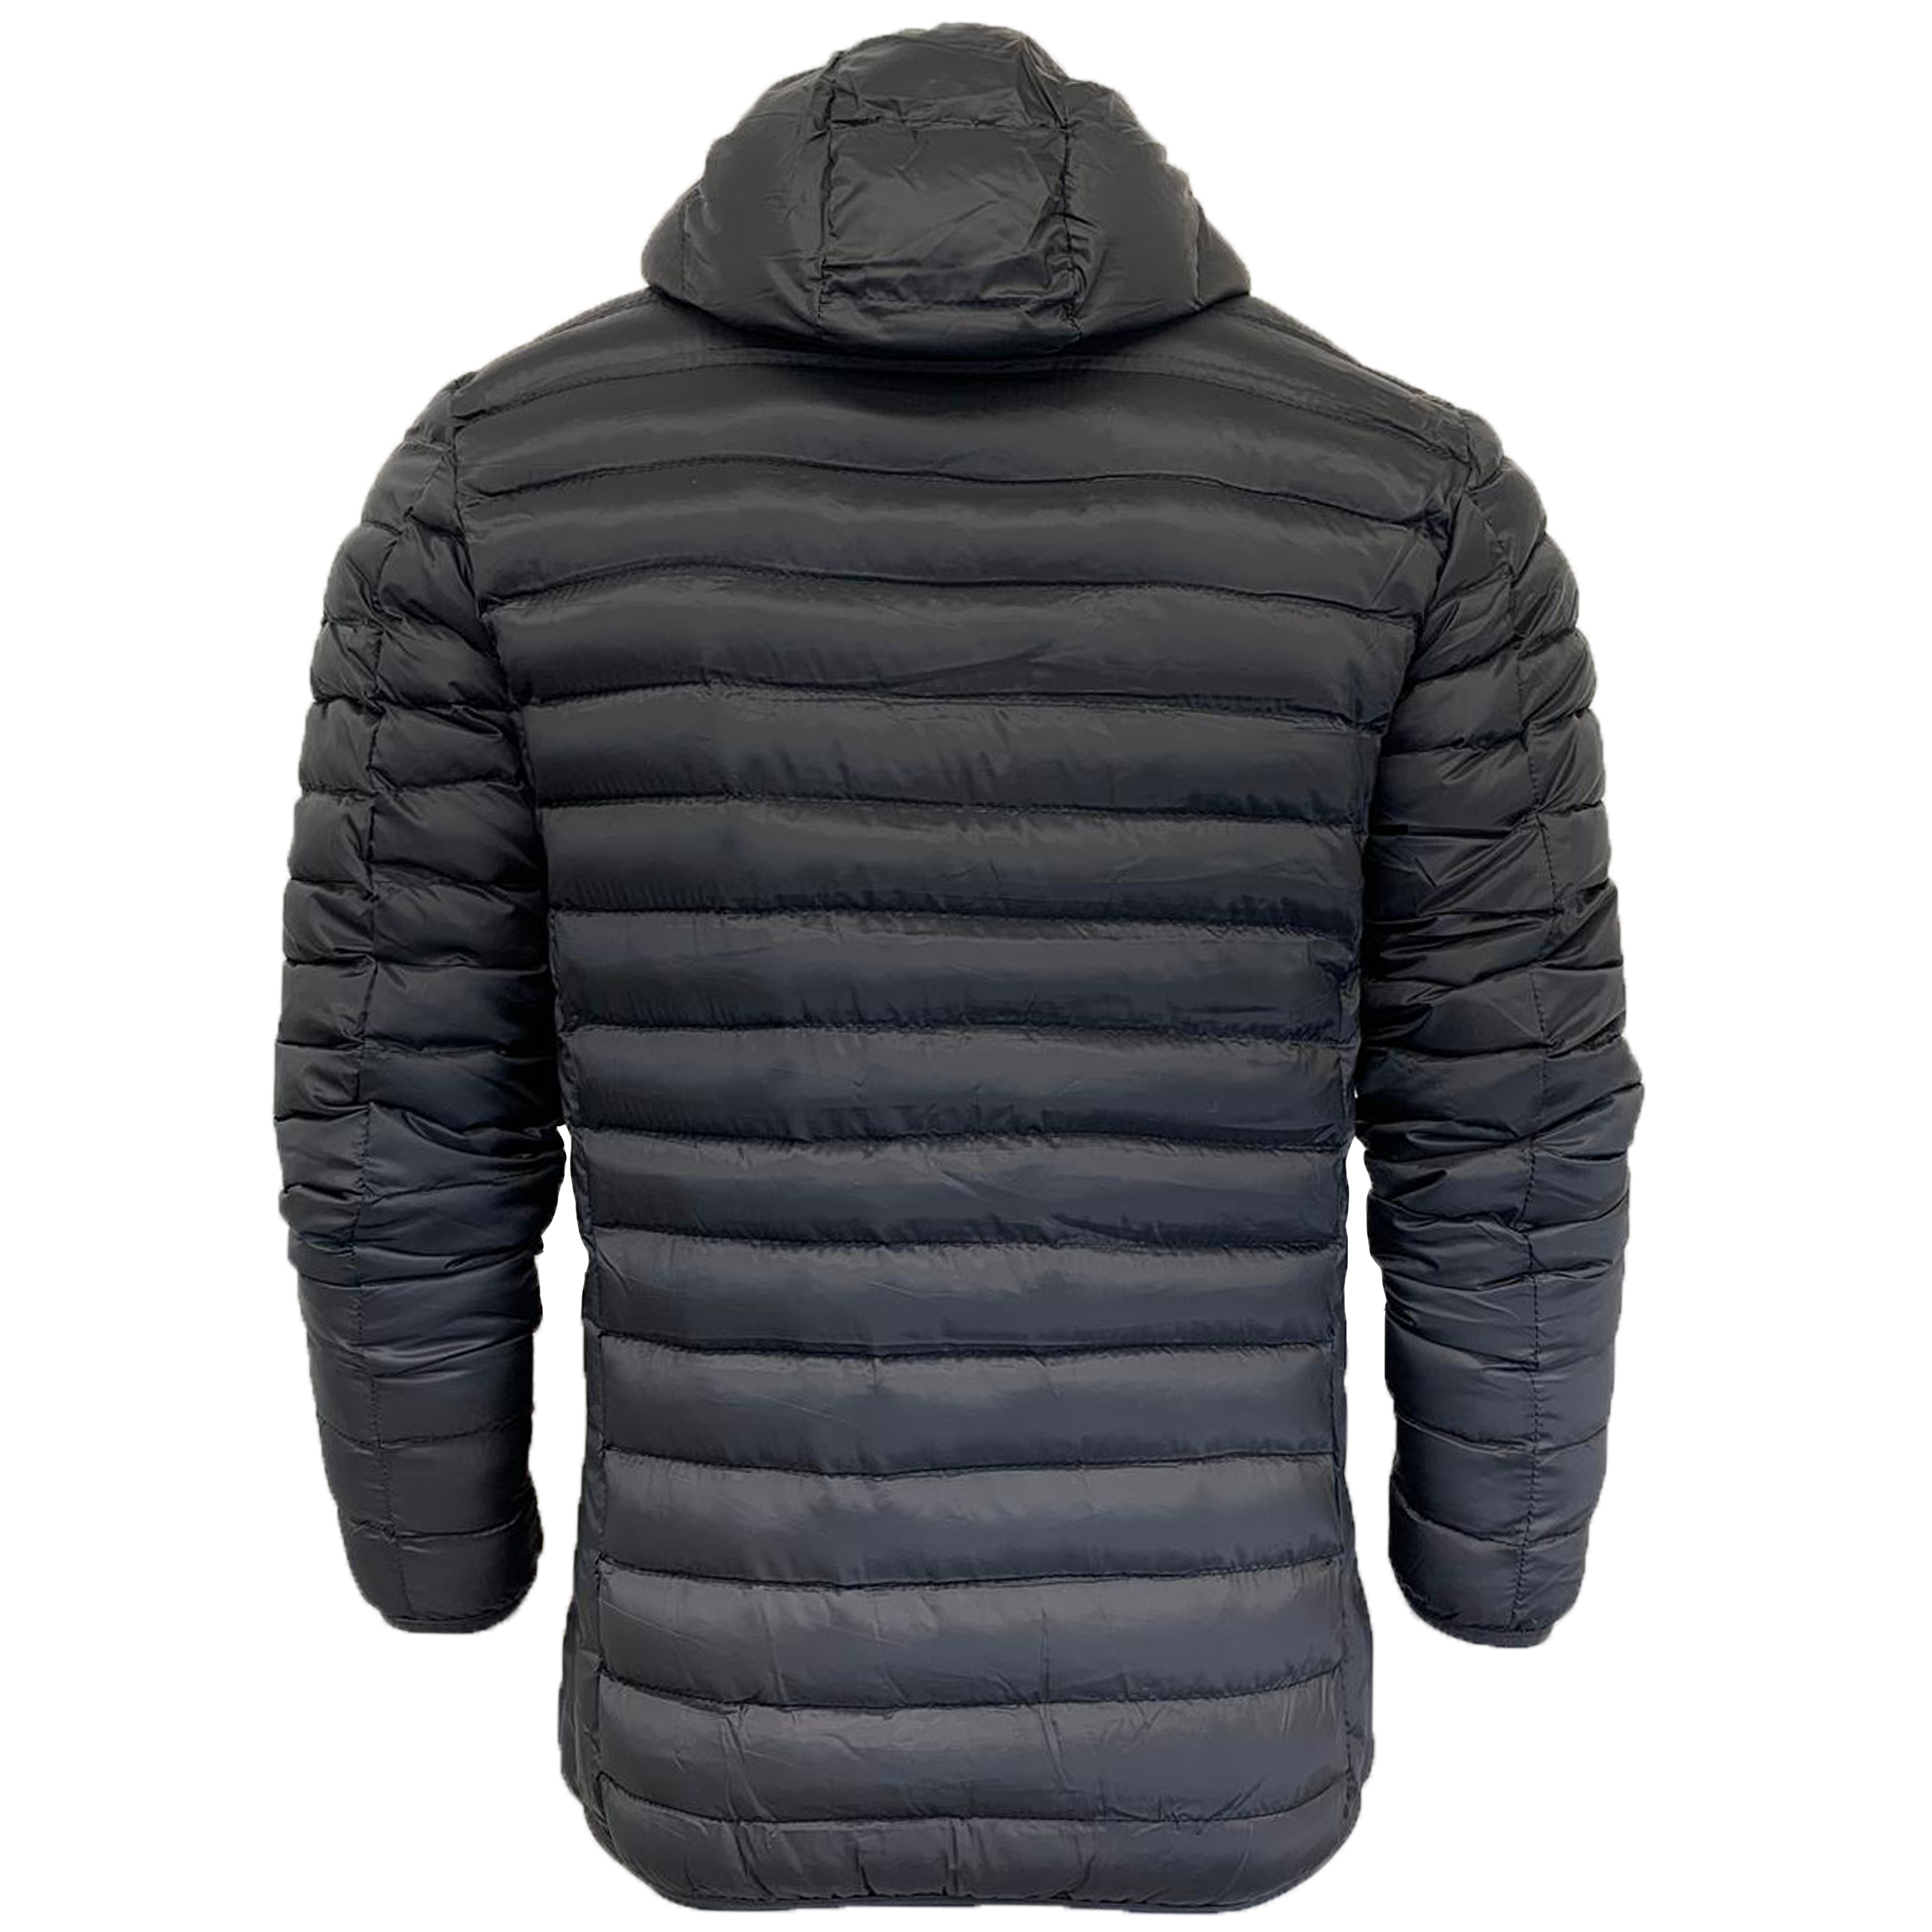 Mens-Jacket-Crosshatch-Hooded-Padded-Quilted-Two-Tone-FADEDOWN-Lined-Winter-New thumbnail 5